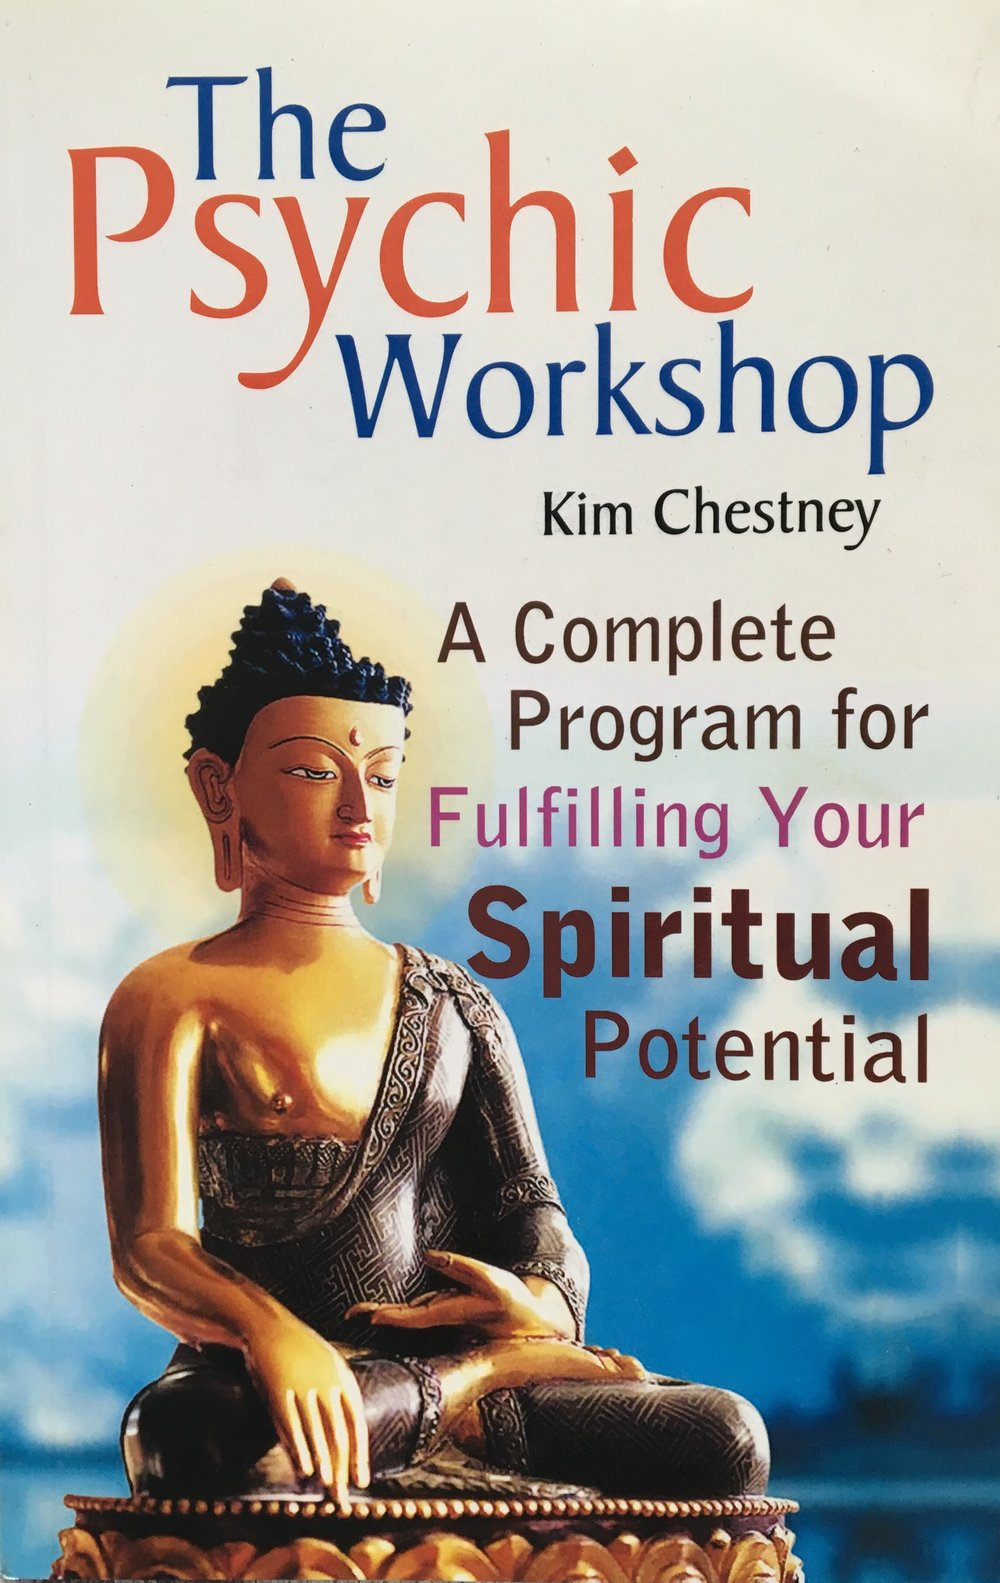 psychic-workshop-kim-chestney.png